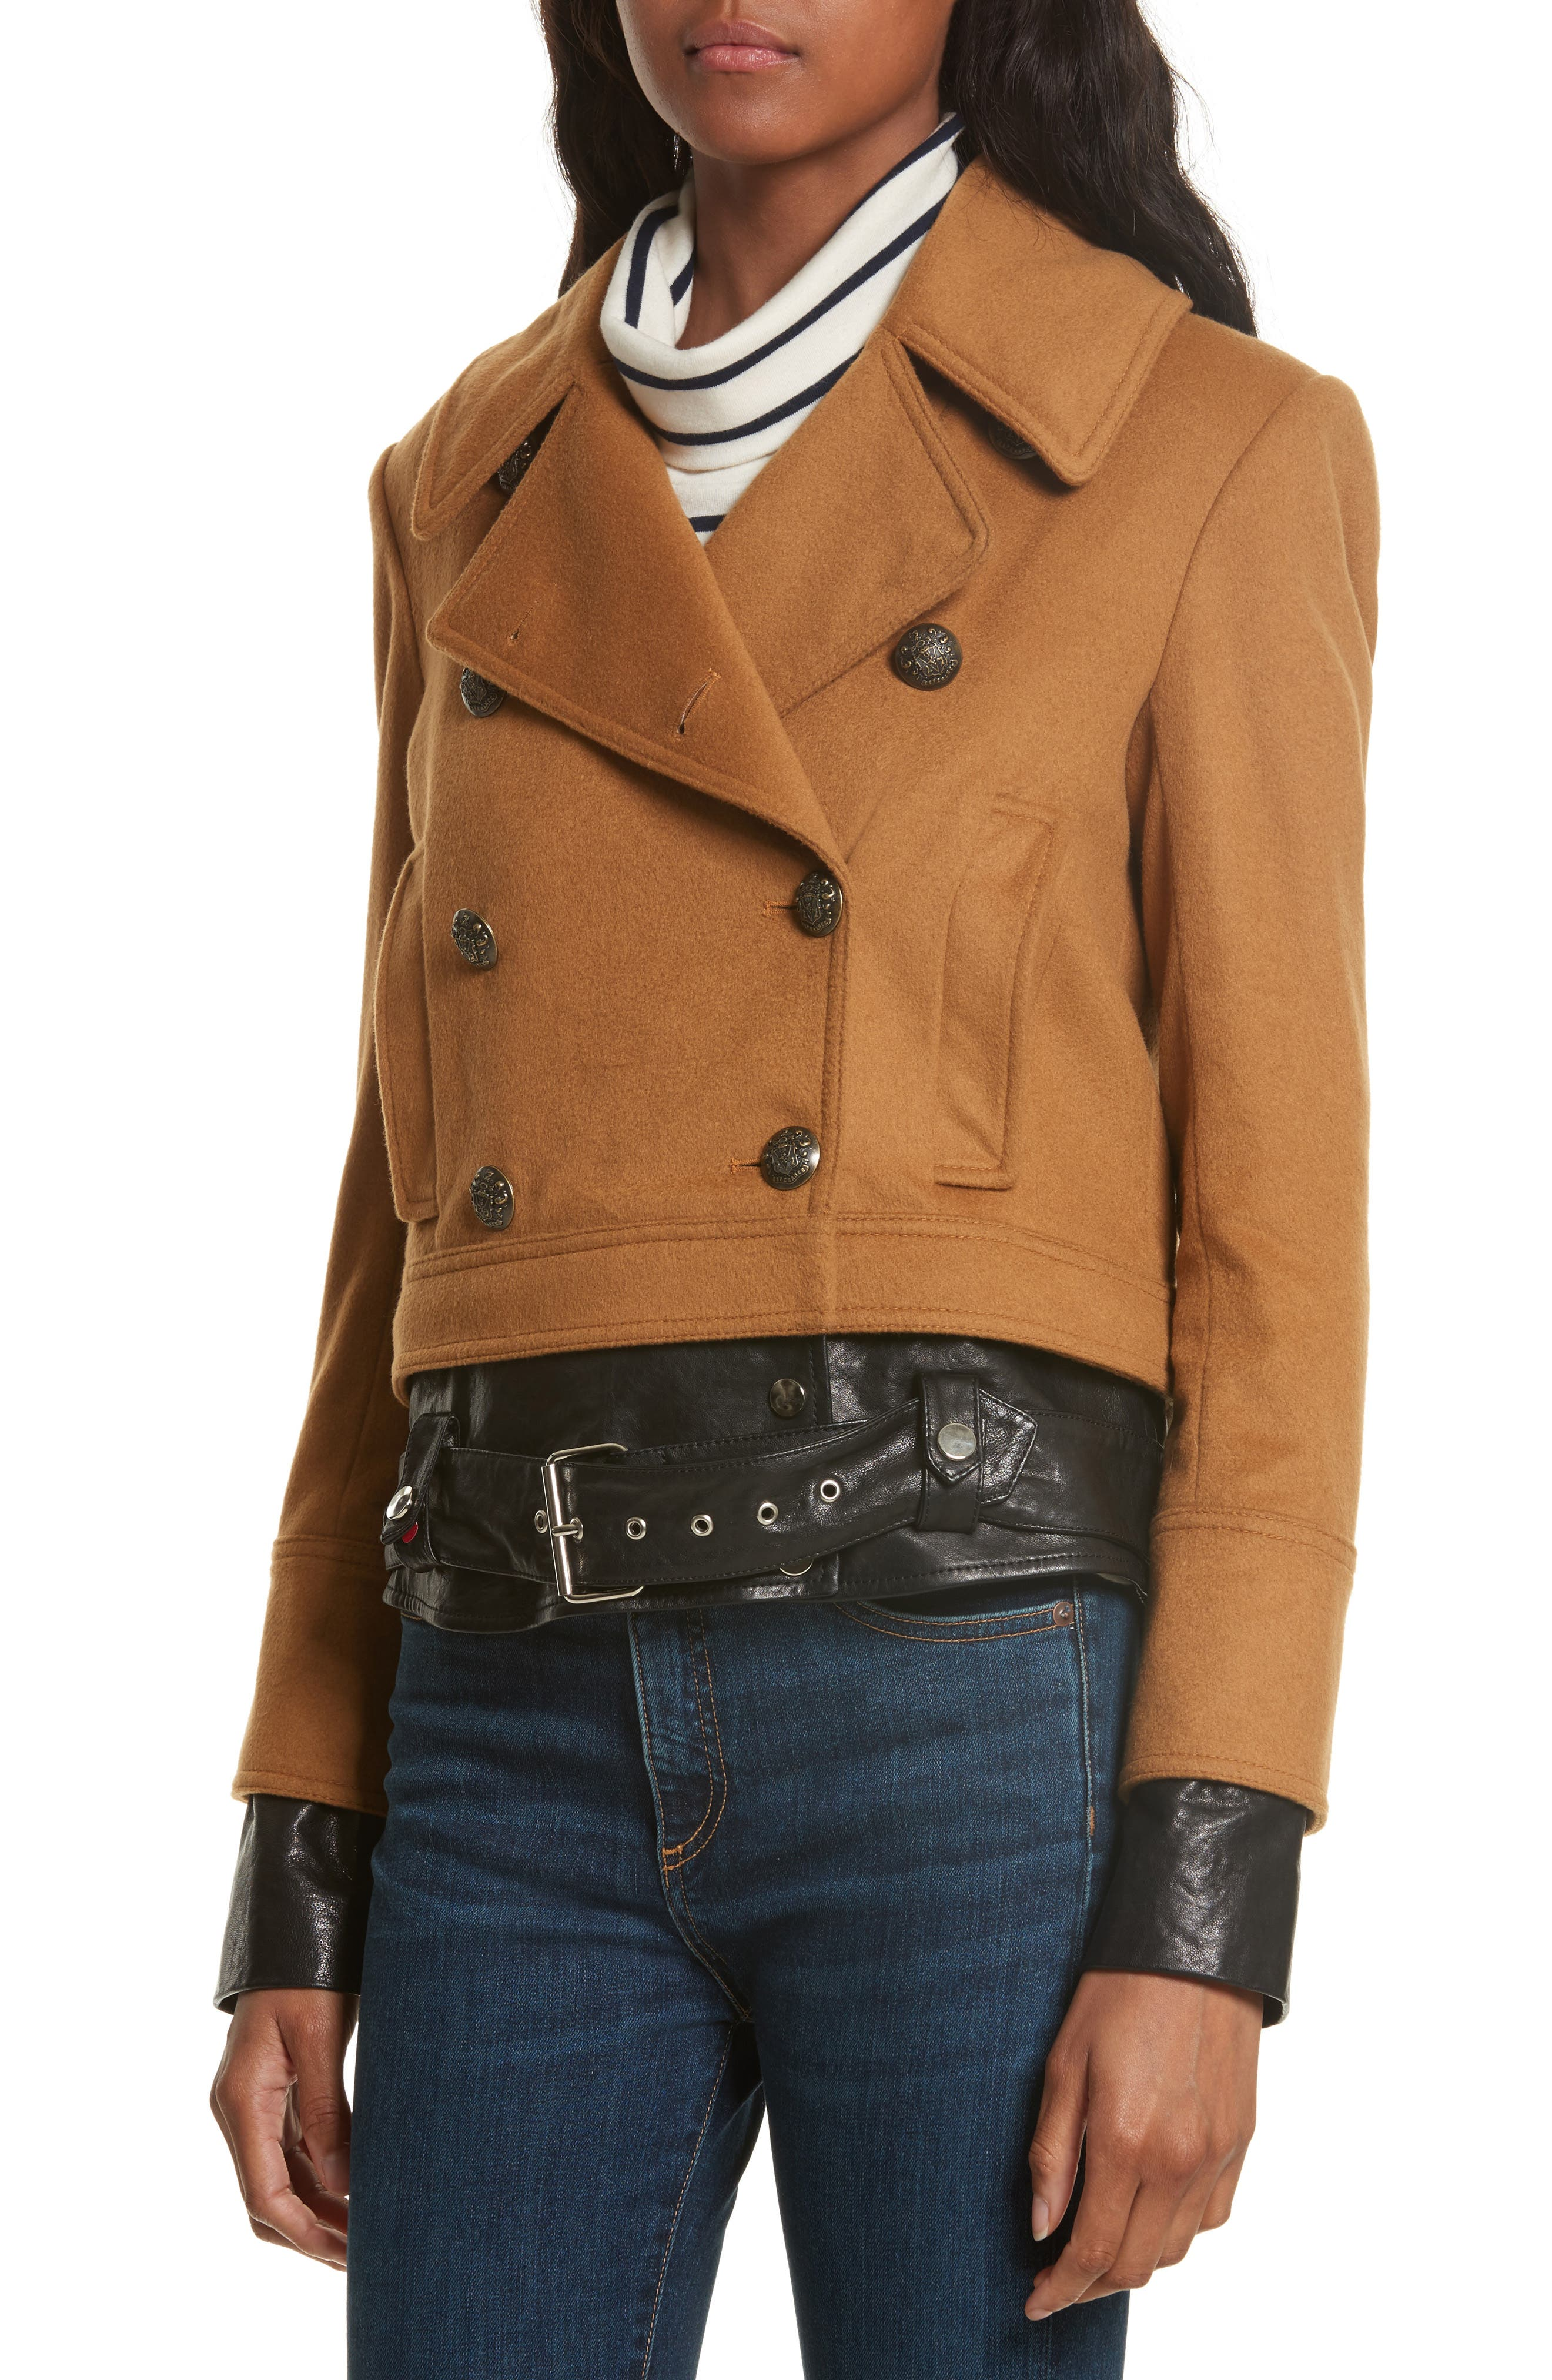 Yara Leather Hem Peacoat,                             Alternate thumbnail 4, color,                             245